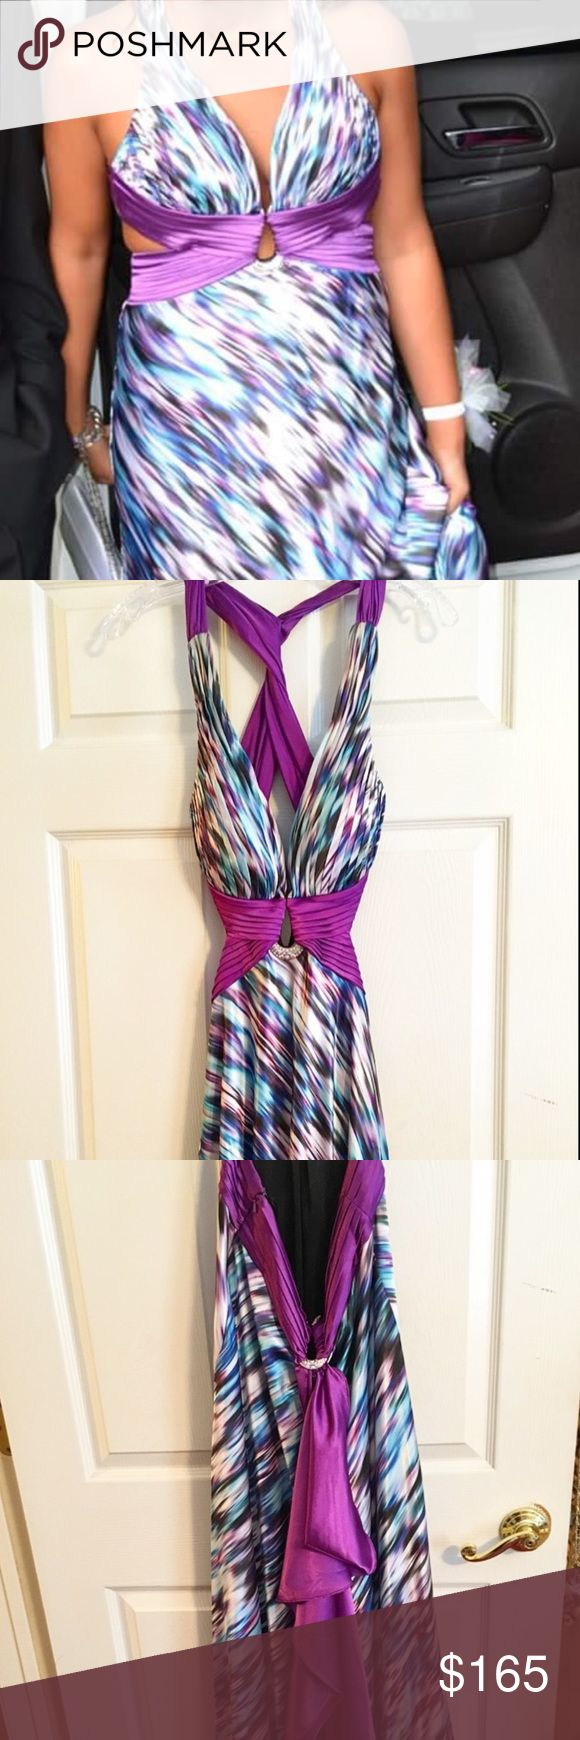 *SALE*  LA FEMME Multicolor Prom Dress Open Back LA FEMME prom dress with multicolor design and open back. Only warn once and in excellent condition. Long in length and has purple tail that can be detached if wanted. Stone design in back and also in chest. Cross cross in back with open sides. Very beautiful dress! La Femme Dresses Prom